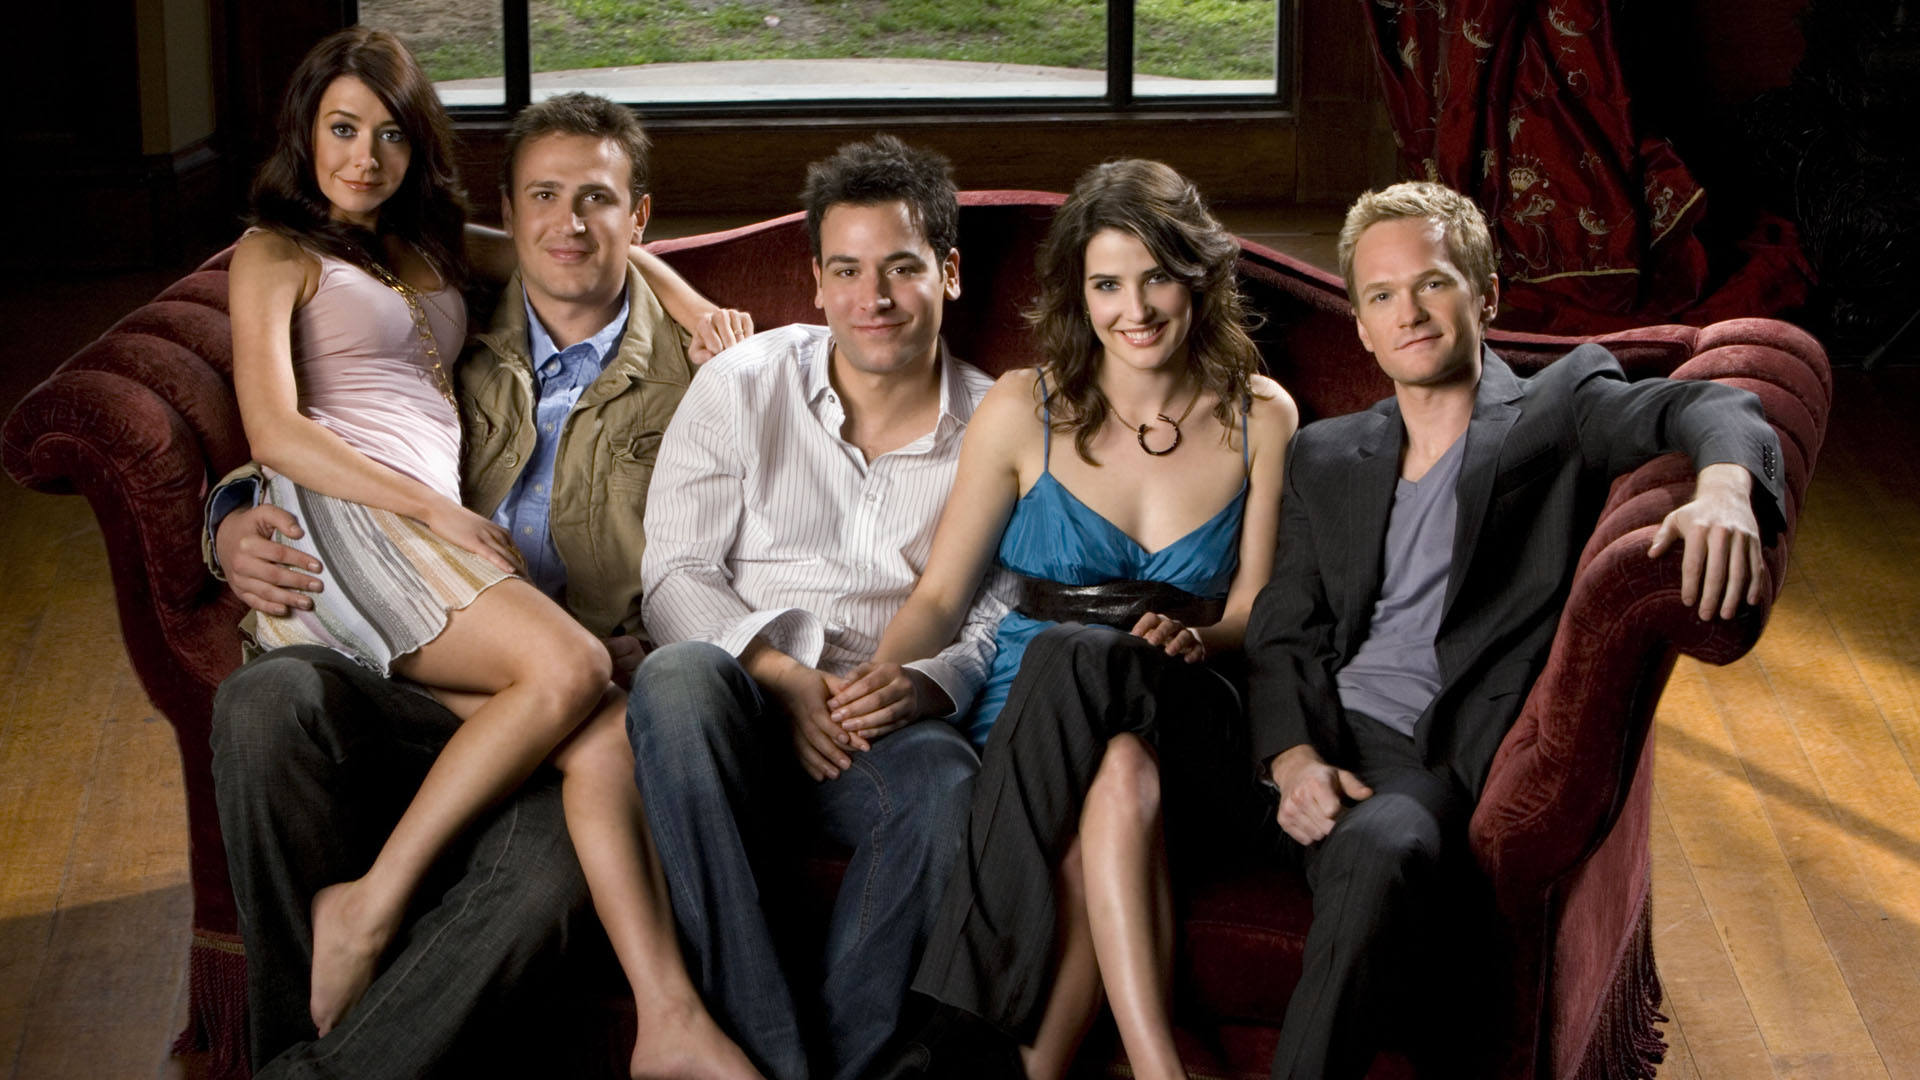 'How I Met Your Mother': Grade the series finale! - San Jose Mercury News